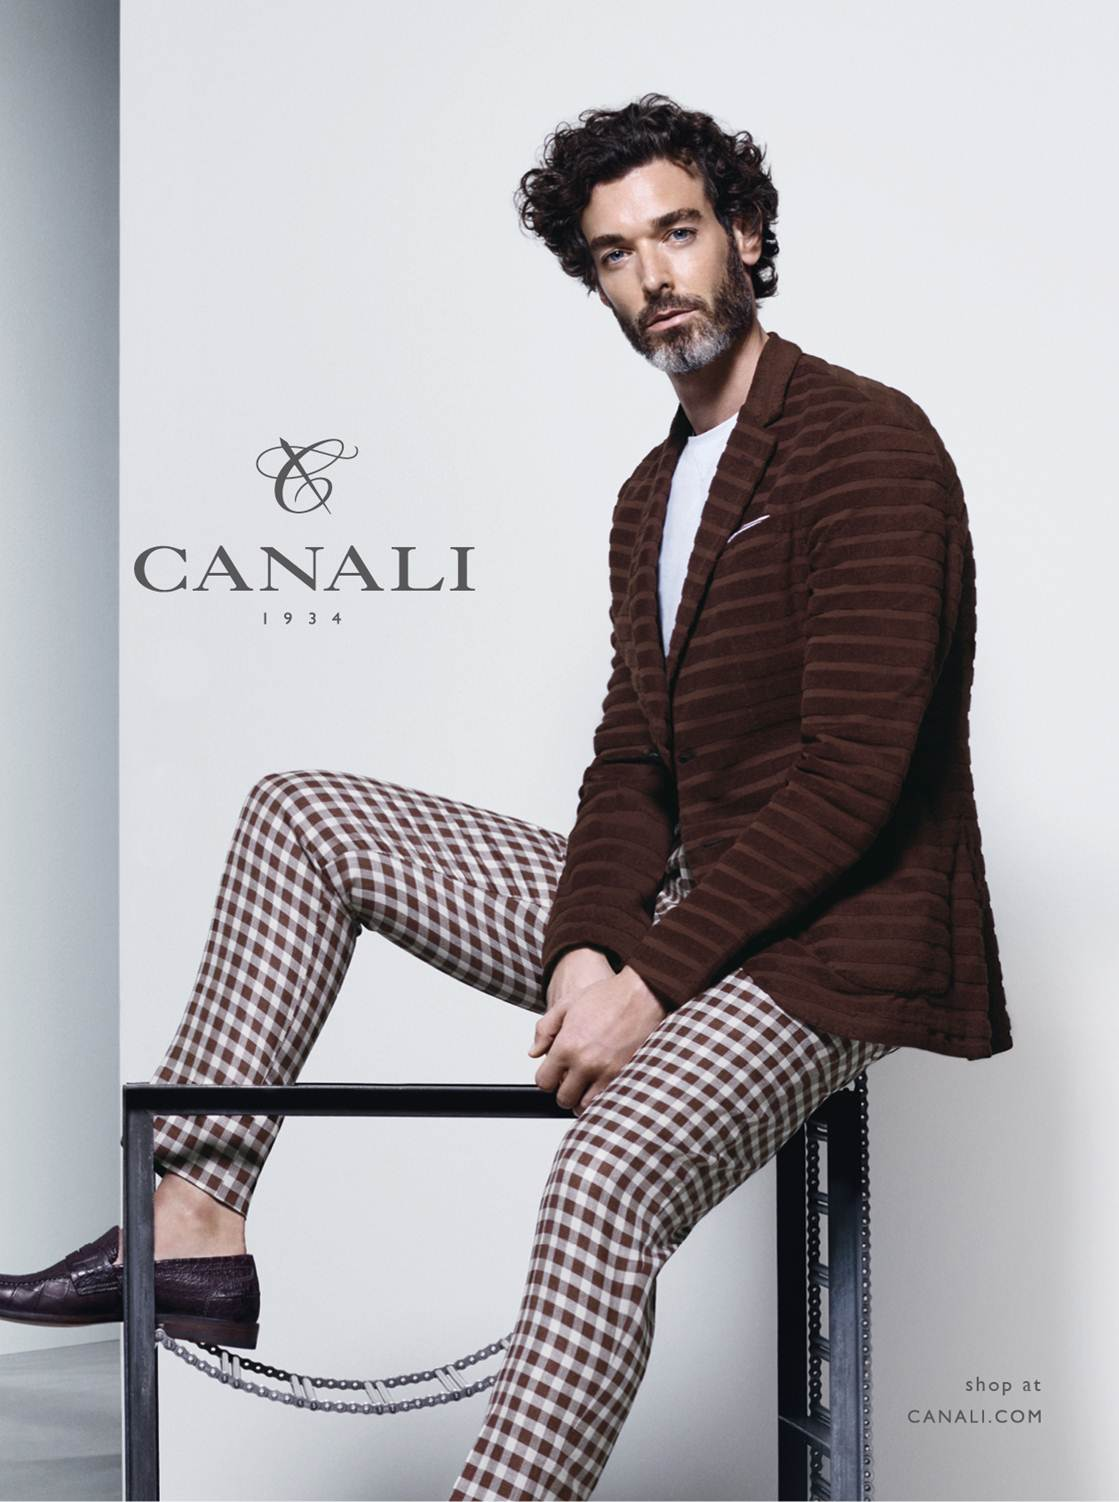 Canali Proposes Summertime Wardrobe Icons